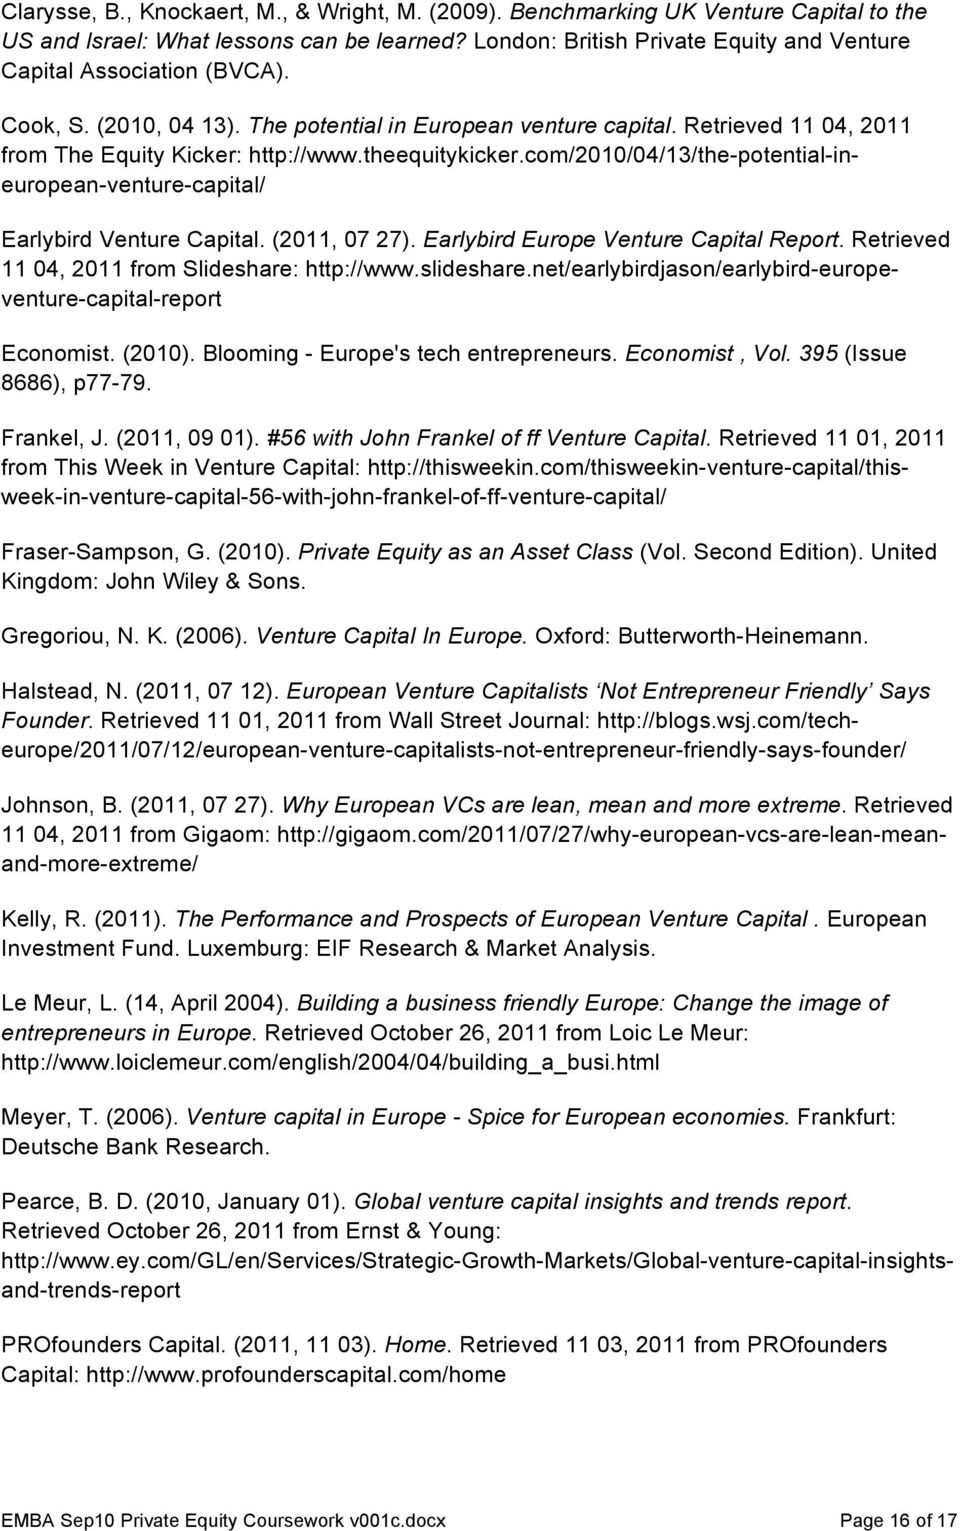 theequitykicker.com/2010/04/13/the-potential-ineuropean-venture-capital/ Earlybird Venture Capital. (2011, 07 27). Earlybird Europe Venture Capital Report.